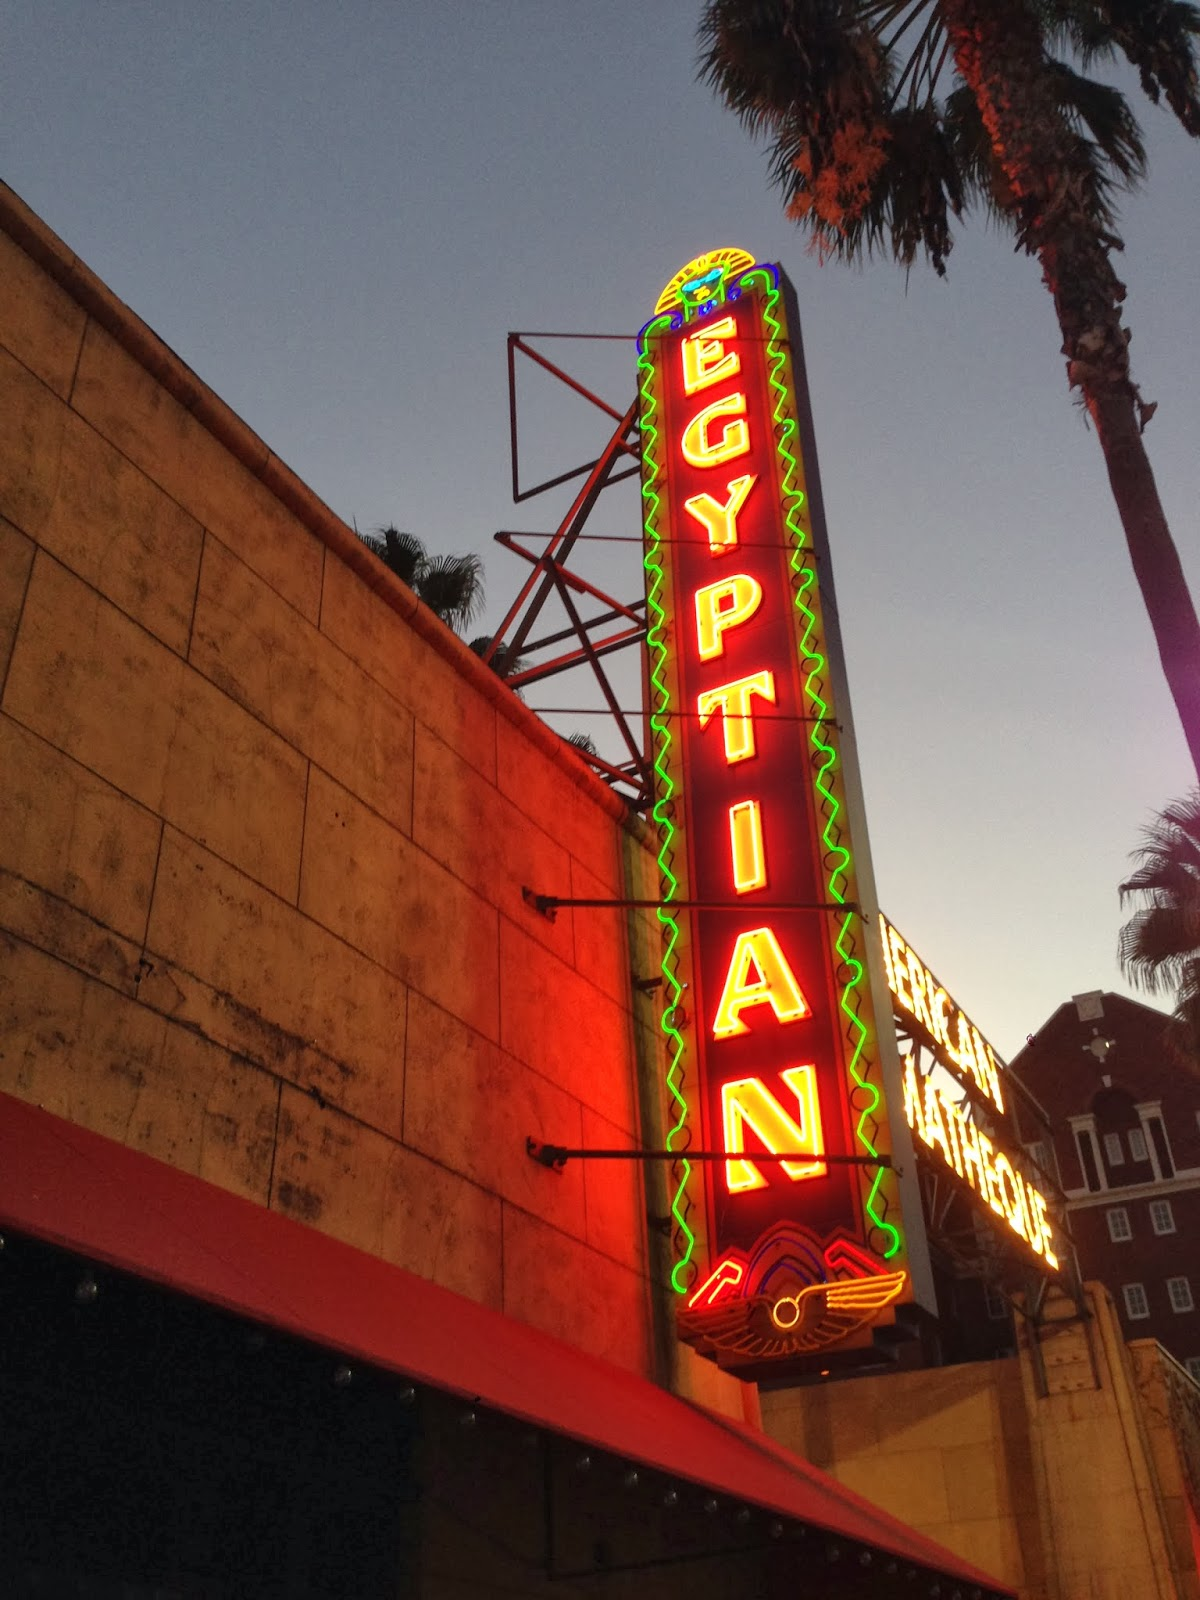 The Egyptian Theatre on Hollywood Blvd.